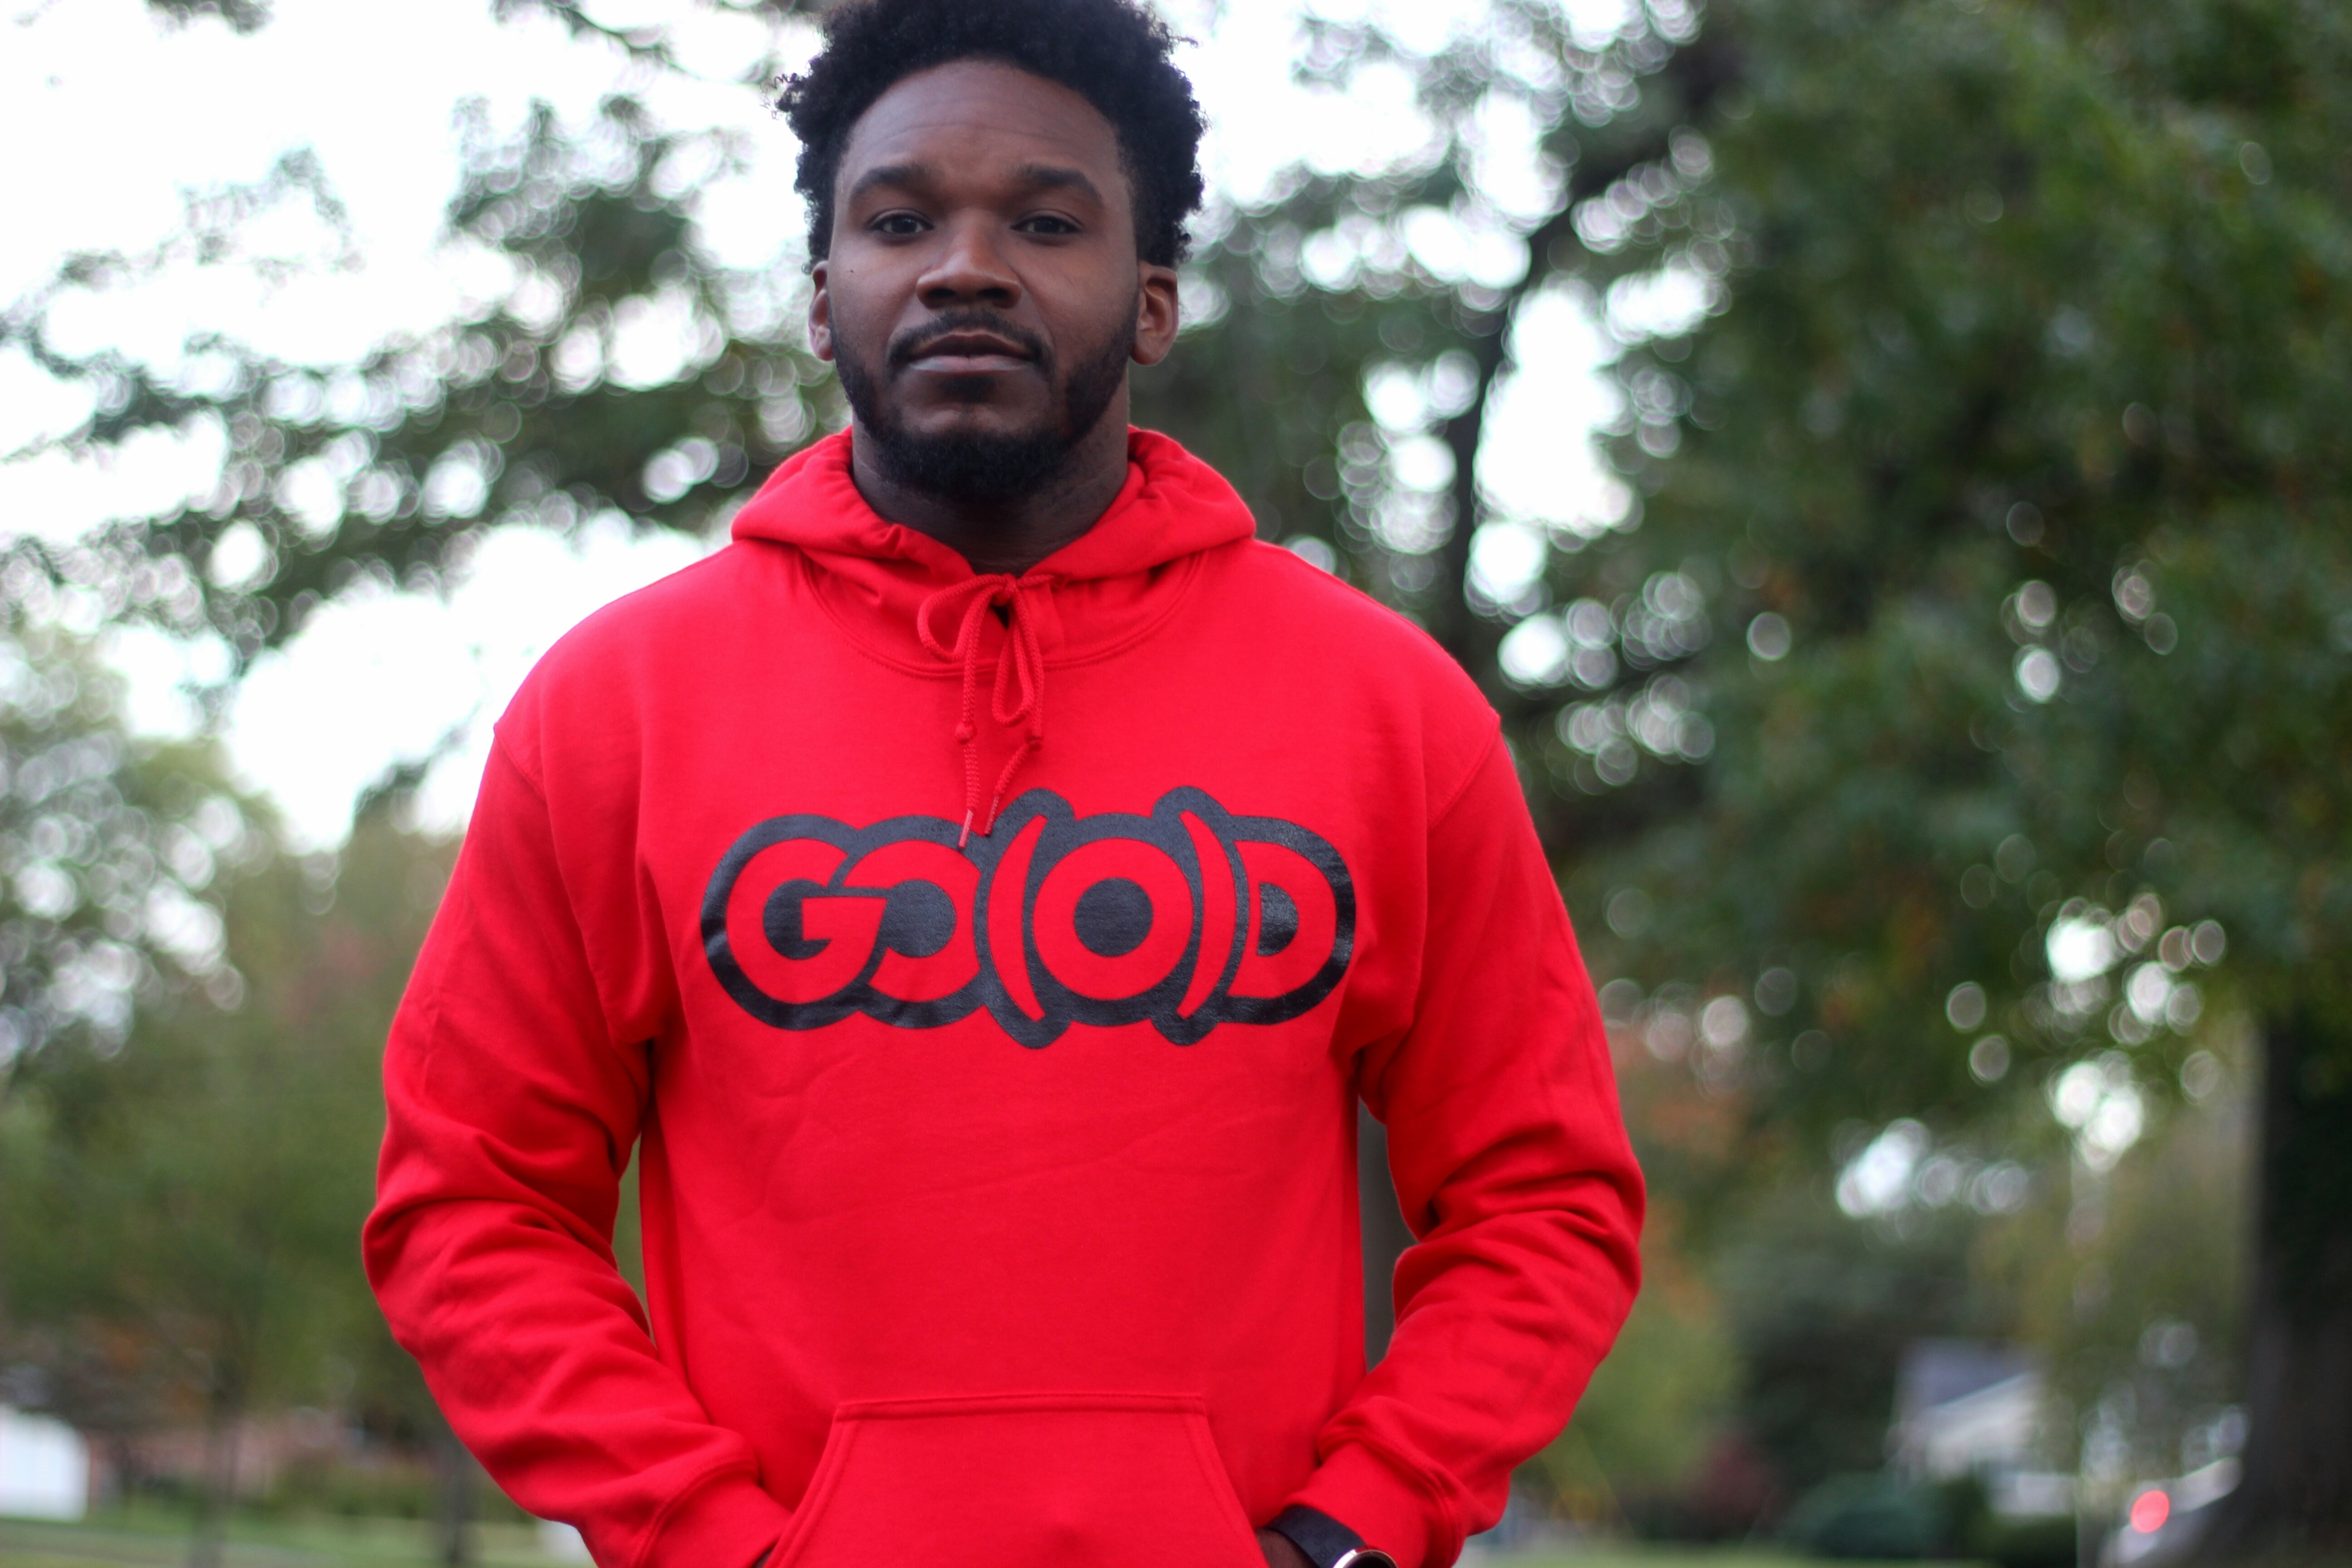 GO(O)D Hoodie-red 00090